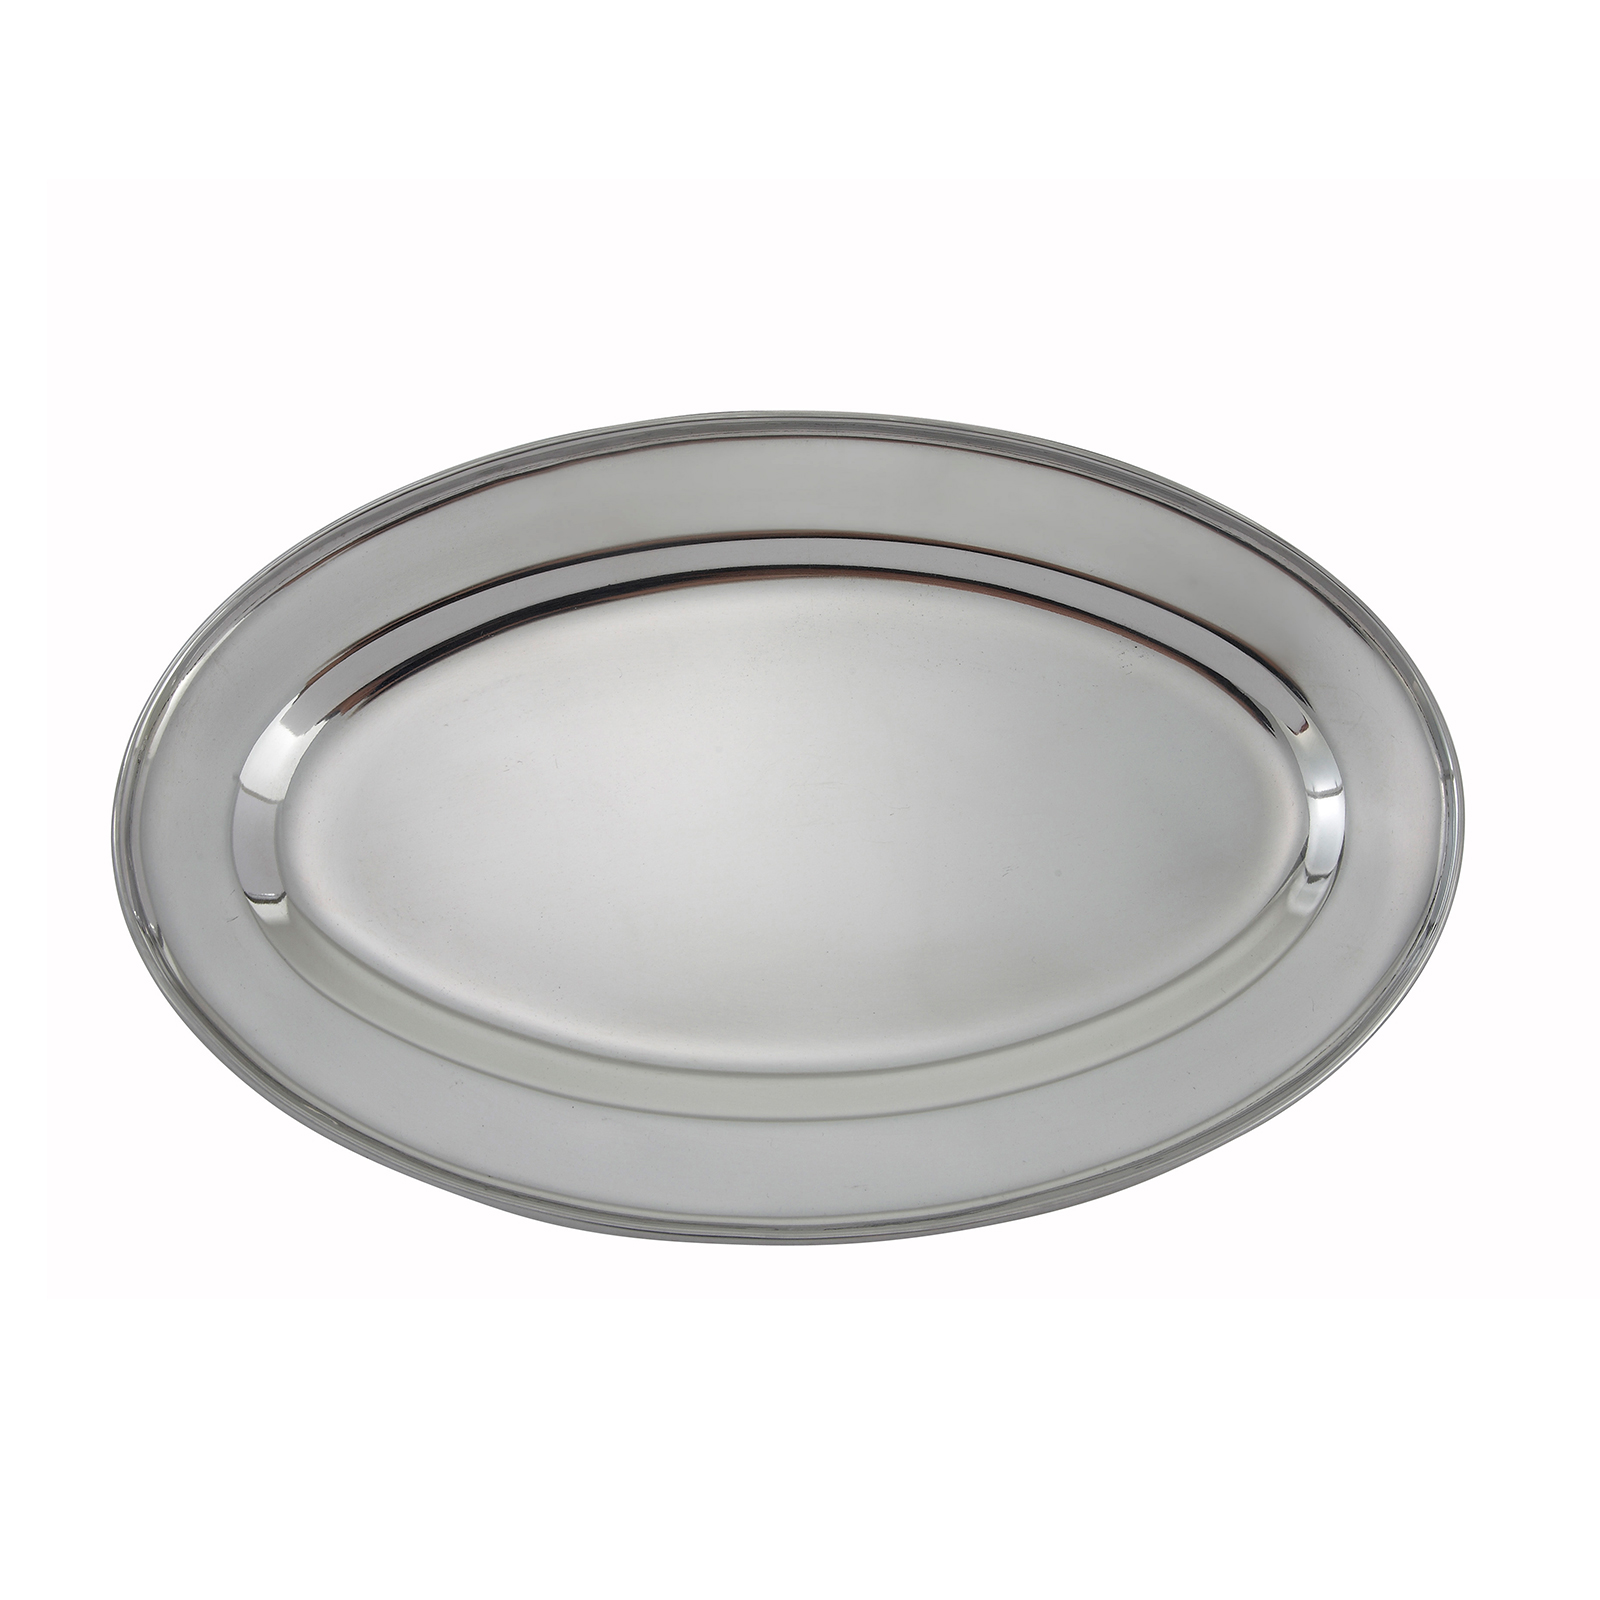 Winco OPL-16 platter, stainless steel